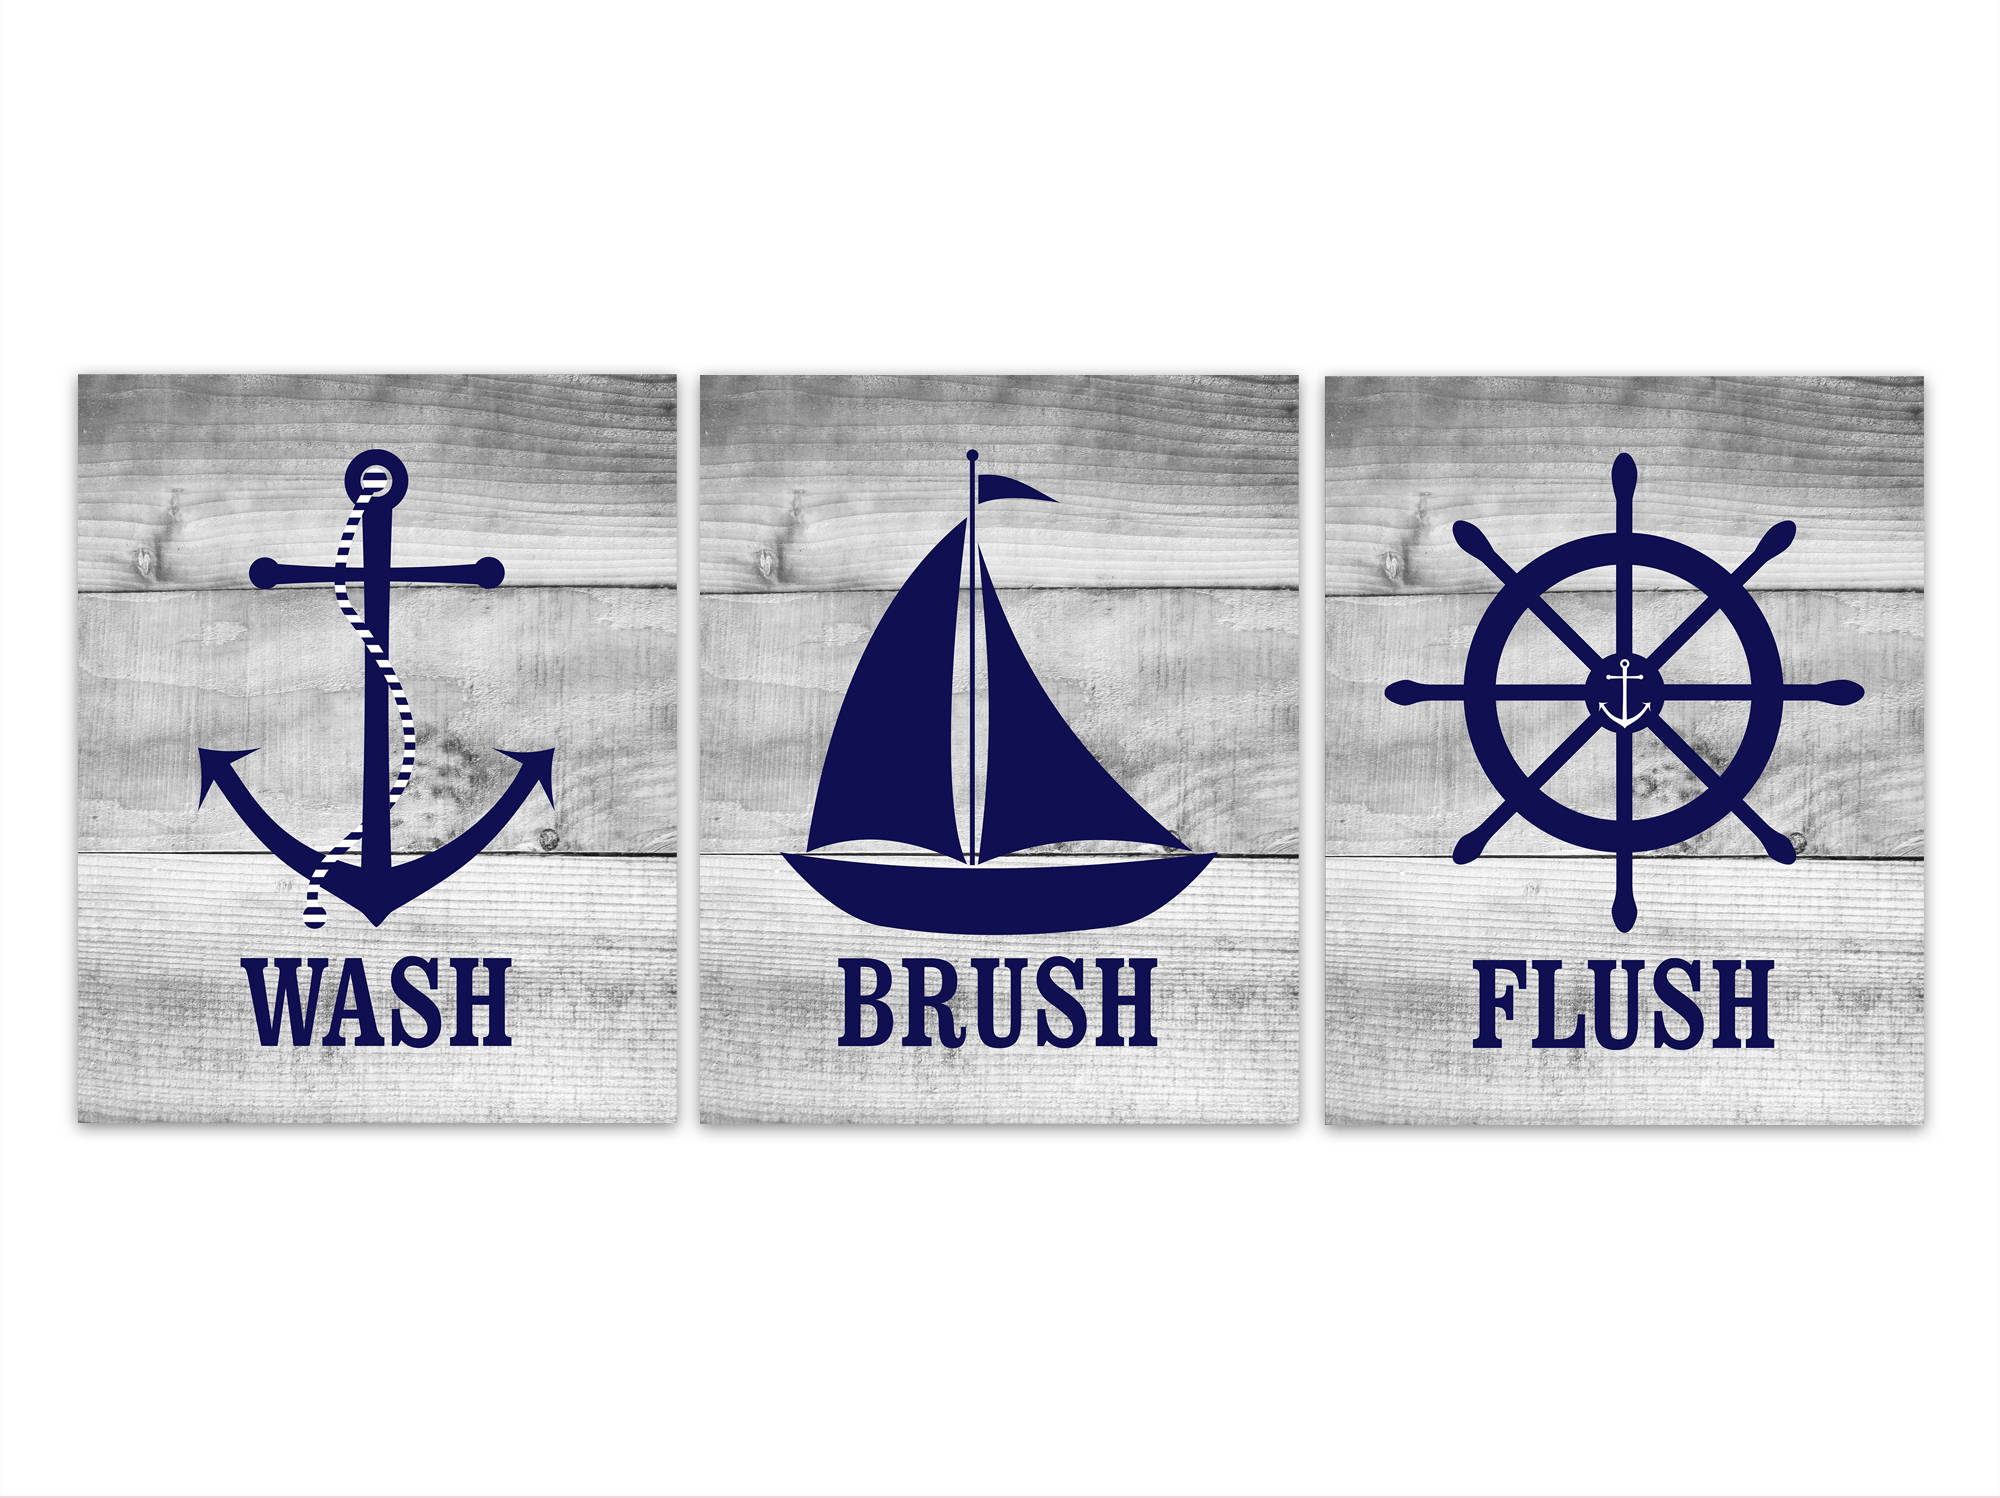 Nautical Bathroom Rules Wall Art, Wash Brush Flush CANVAS Or PRINTS, Set Of  3 Kids Bathroom Decor, Boys Bathroom Art, Anchor Wheel   BATH186